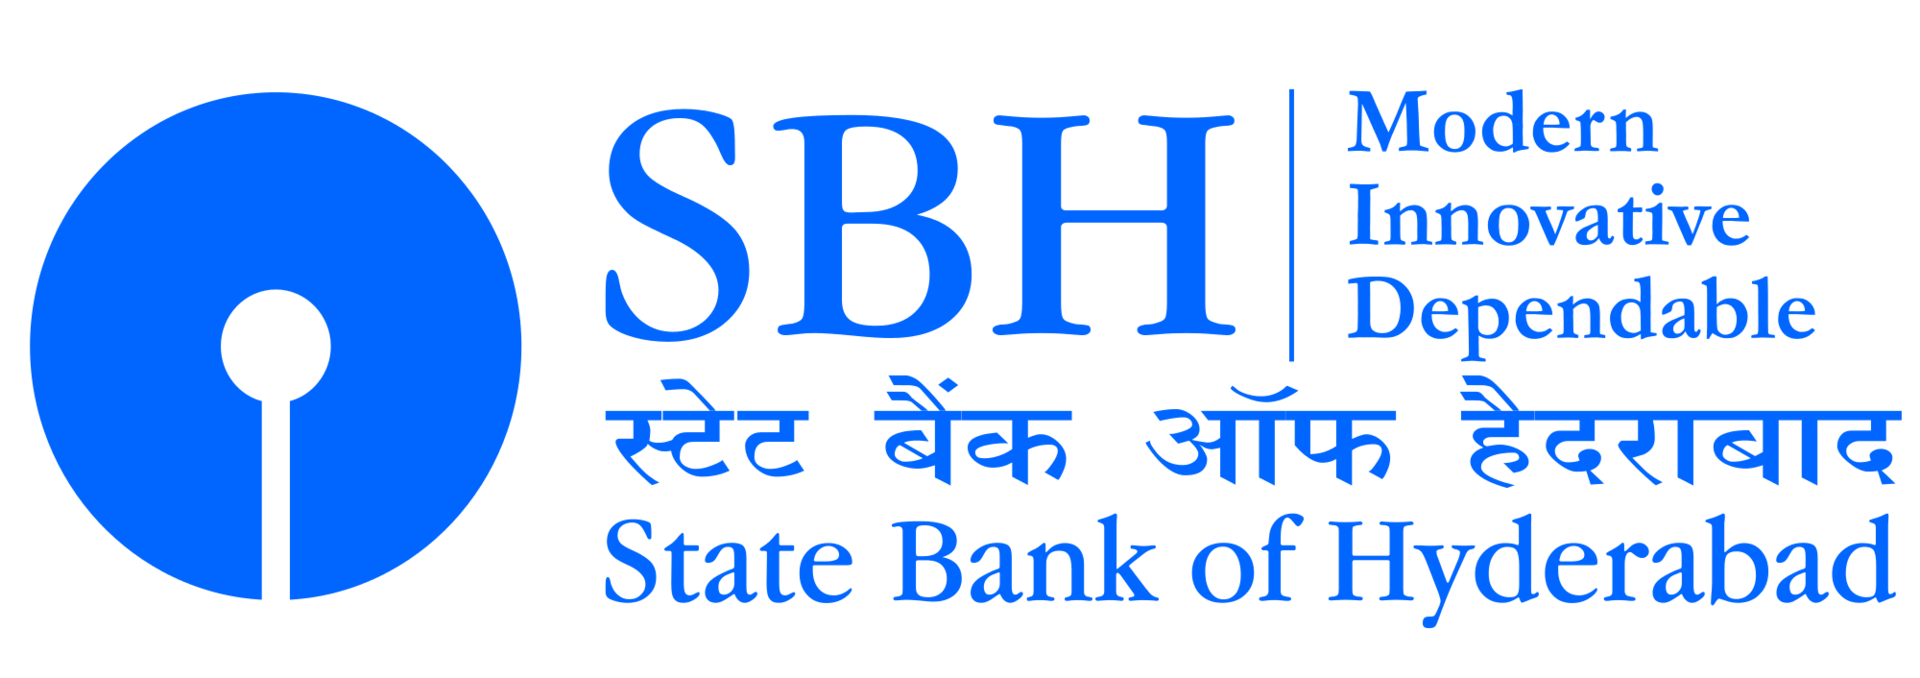 state bank of hyderbad